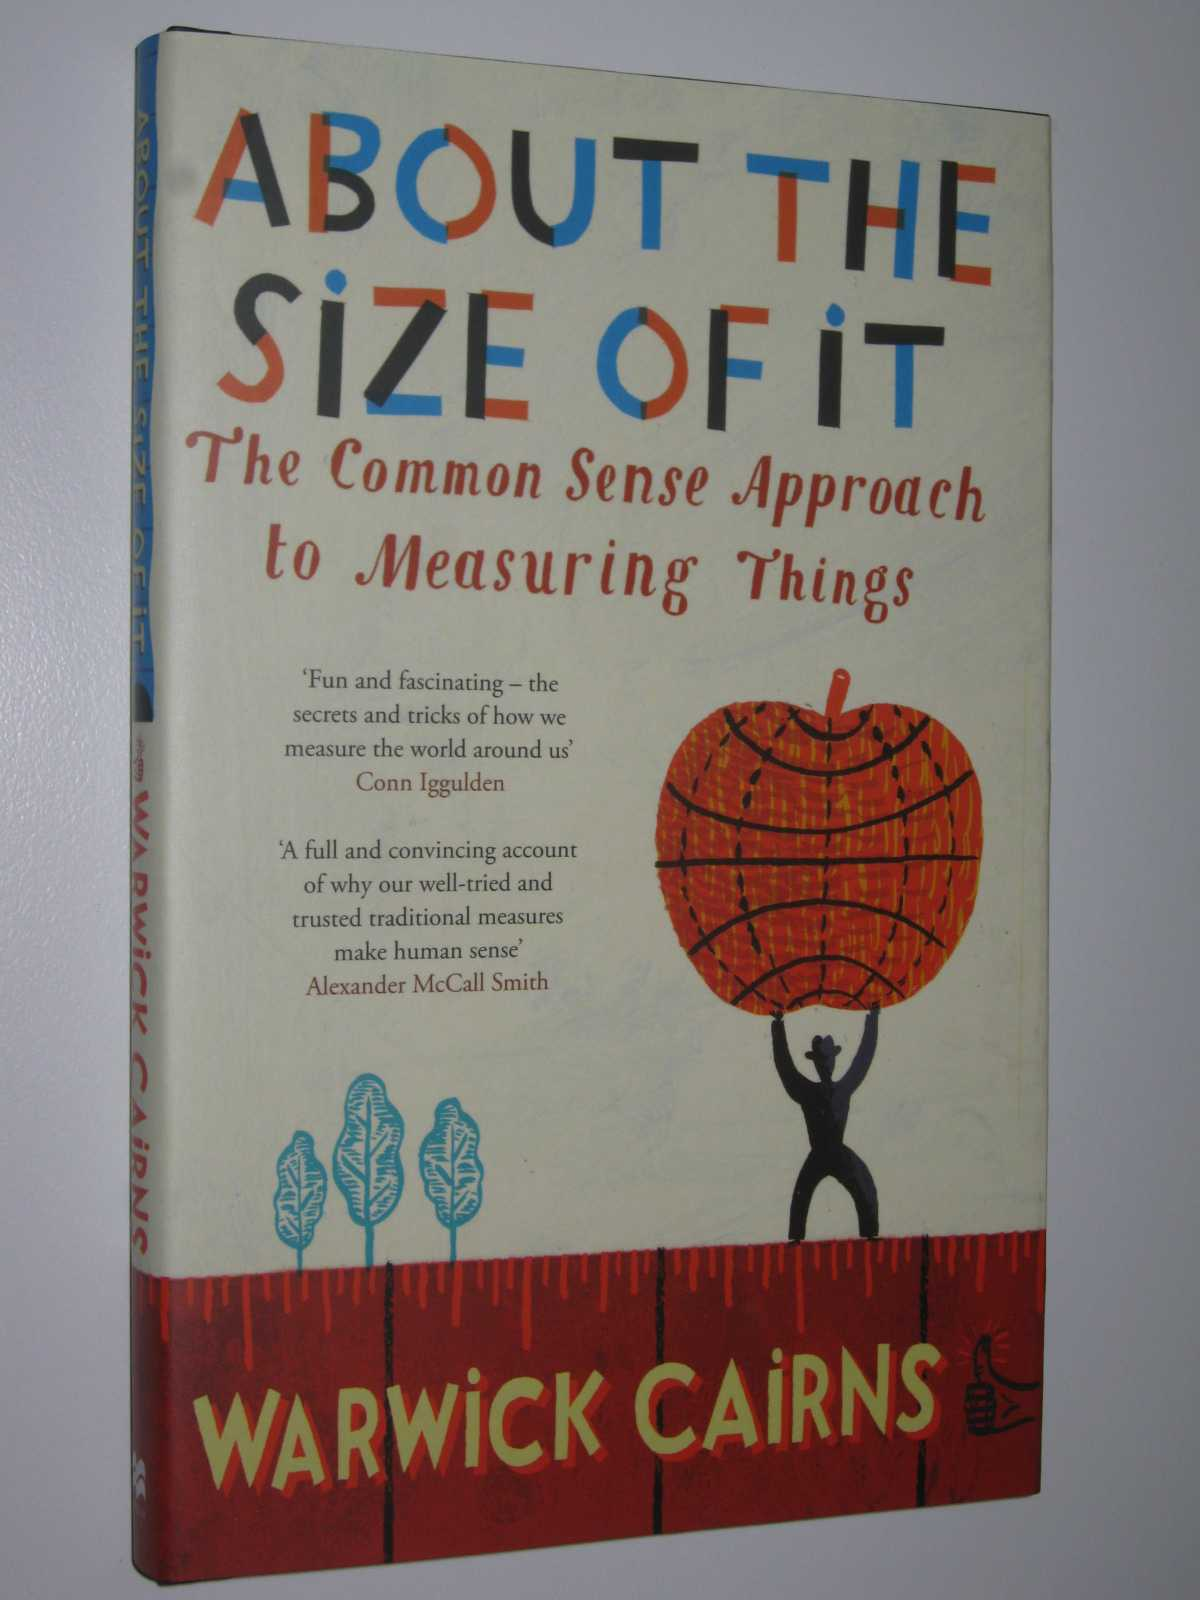 About The Size Of It - The Common Sense Approach To Measuring Things, Cairns, Warwick